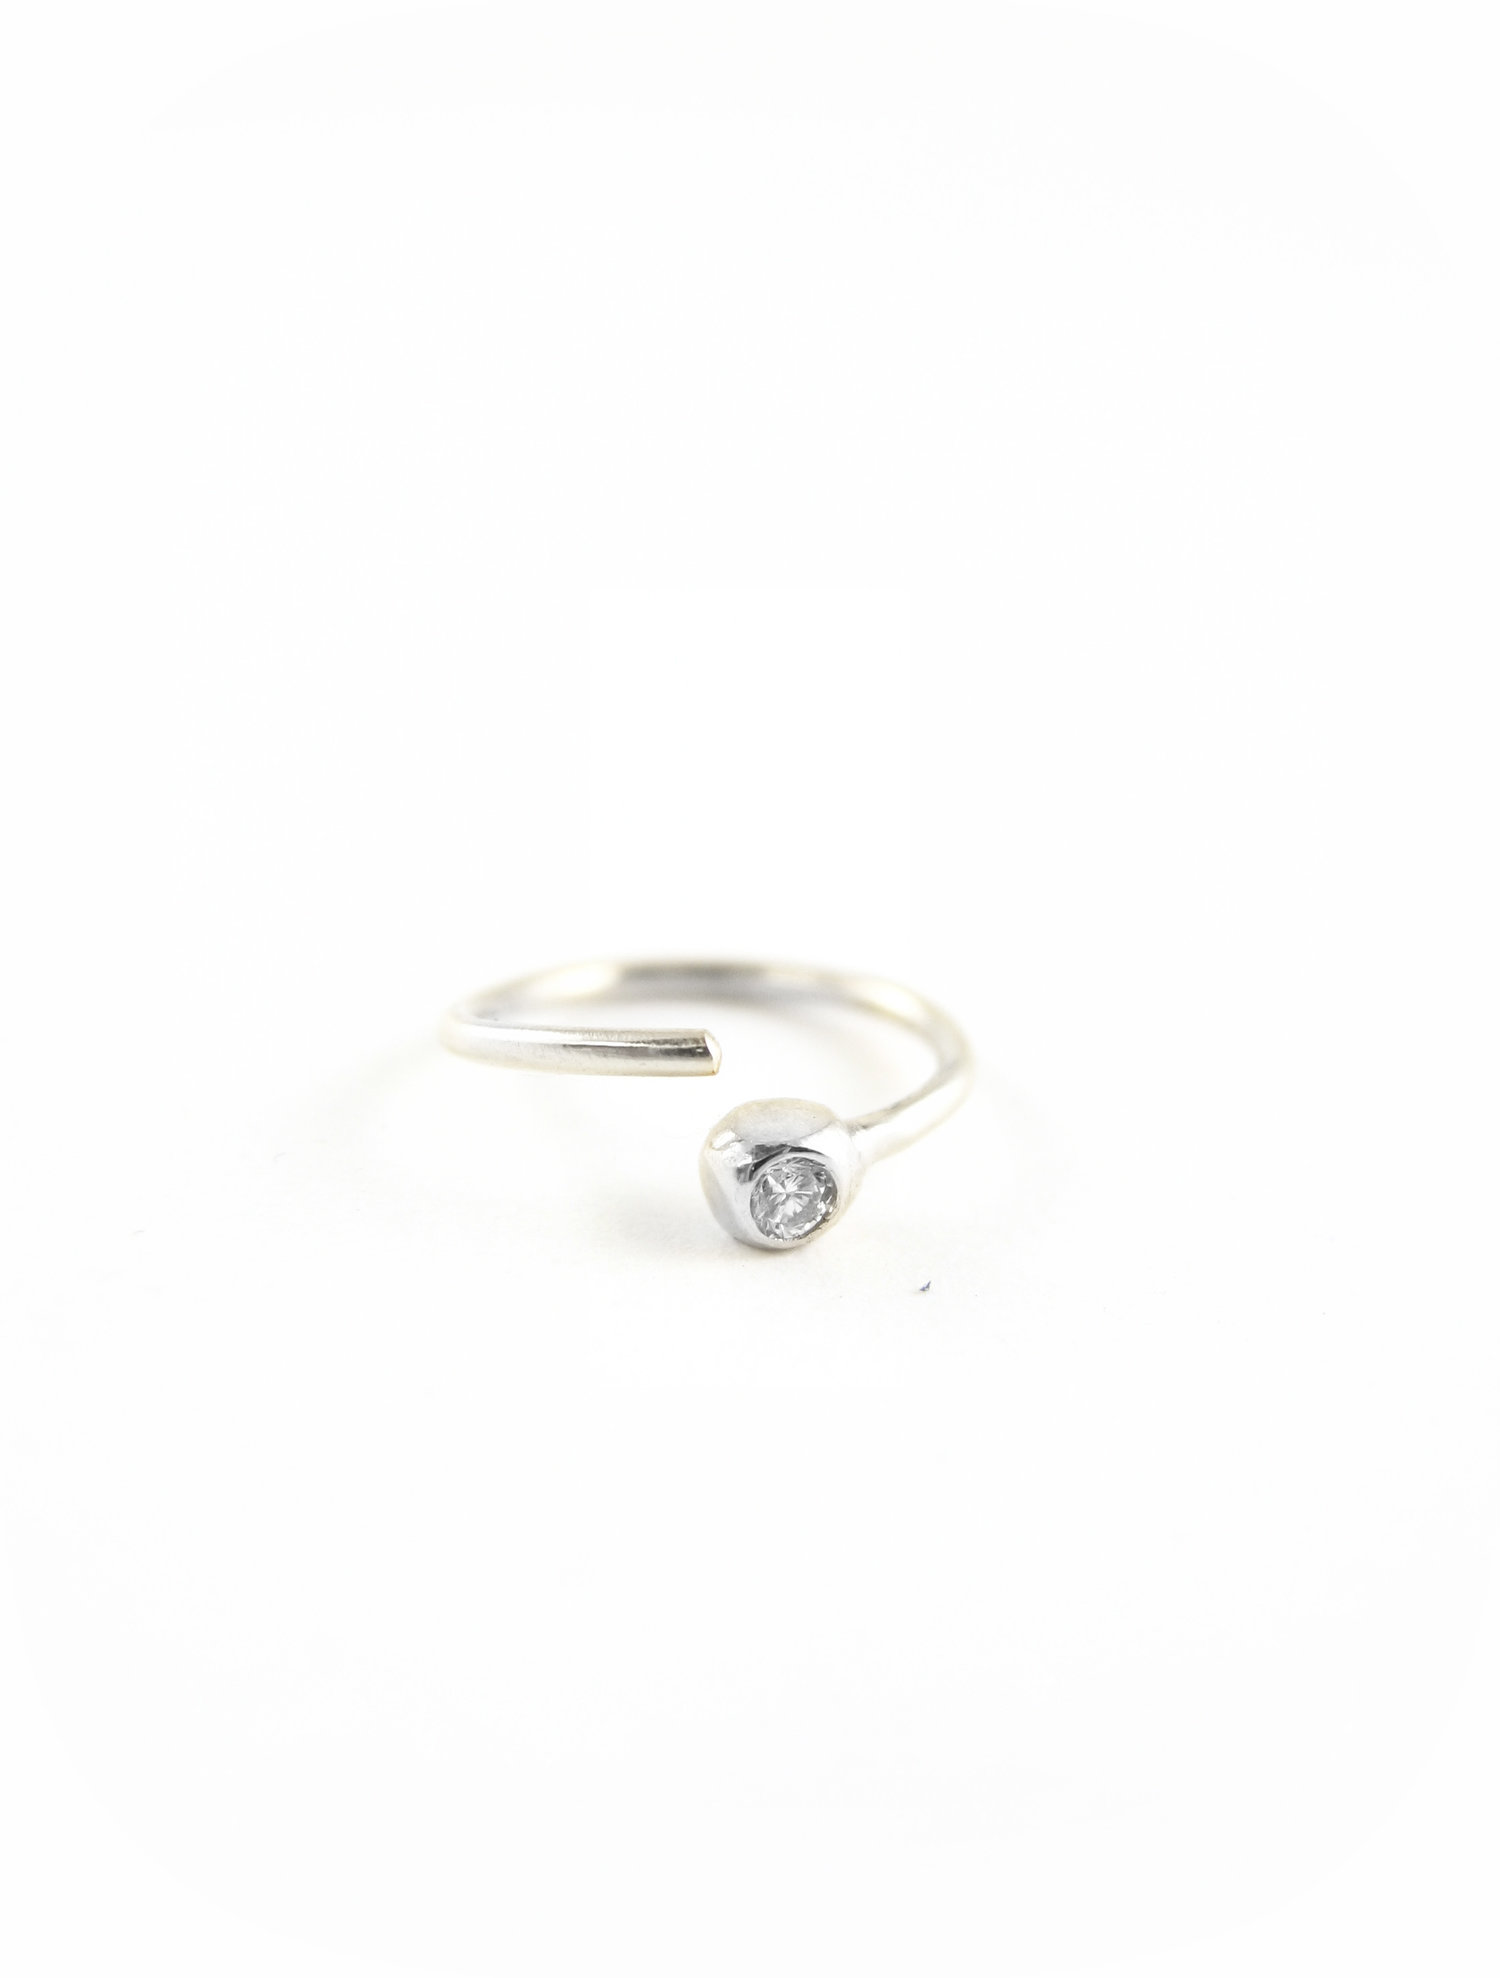 903e9f137 TINY DIAMOND HOOP - NOSE RING - RECYCLED PLATINUM - POST CONSUMER ...